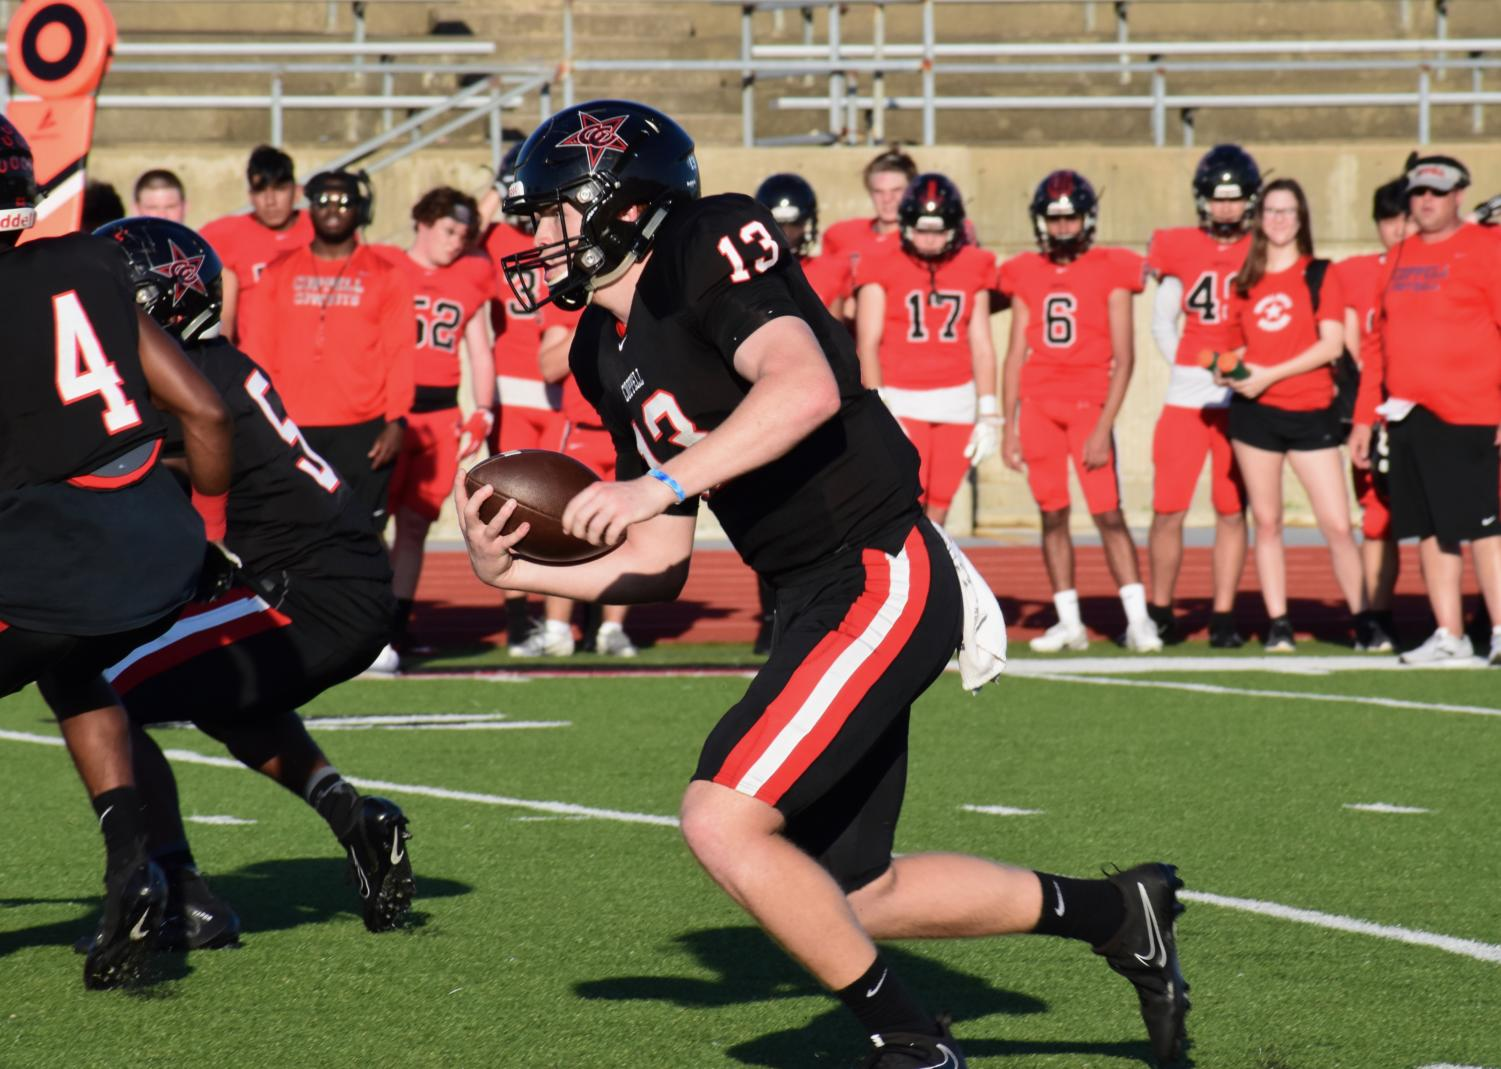 The Black team junior quarterback Drew Cerniglia rushing towards a first down during the annual spring football game. The Black team came up on top 14-7 during the friendly game.